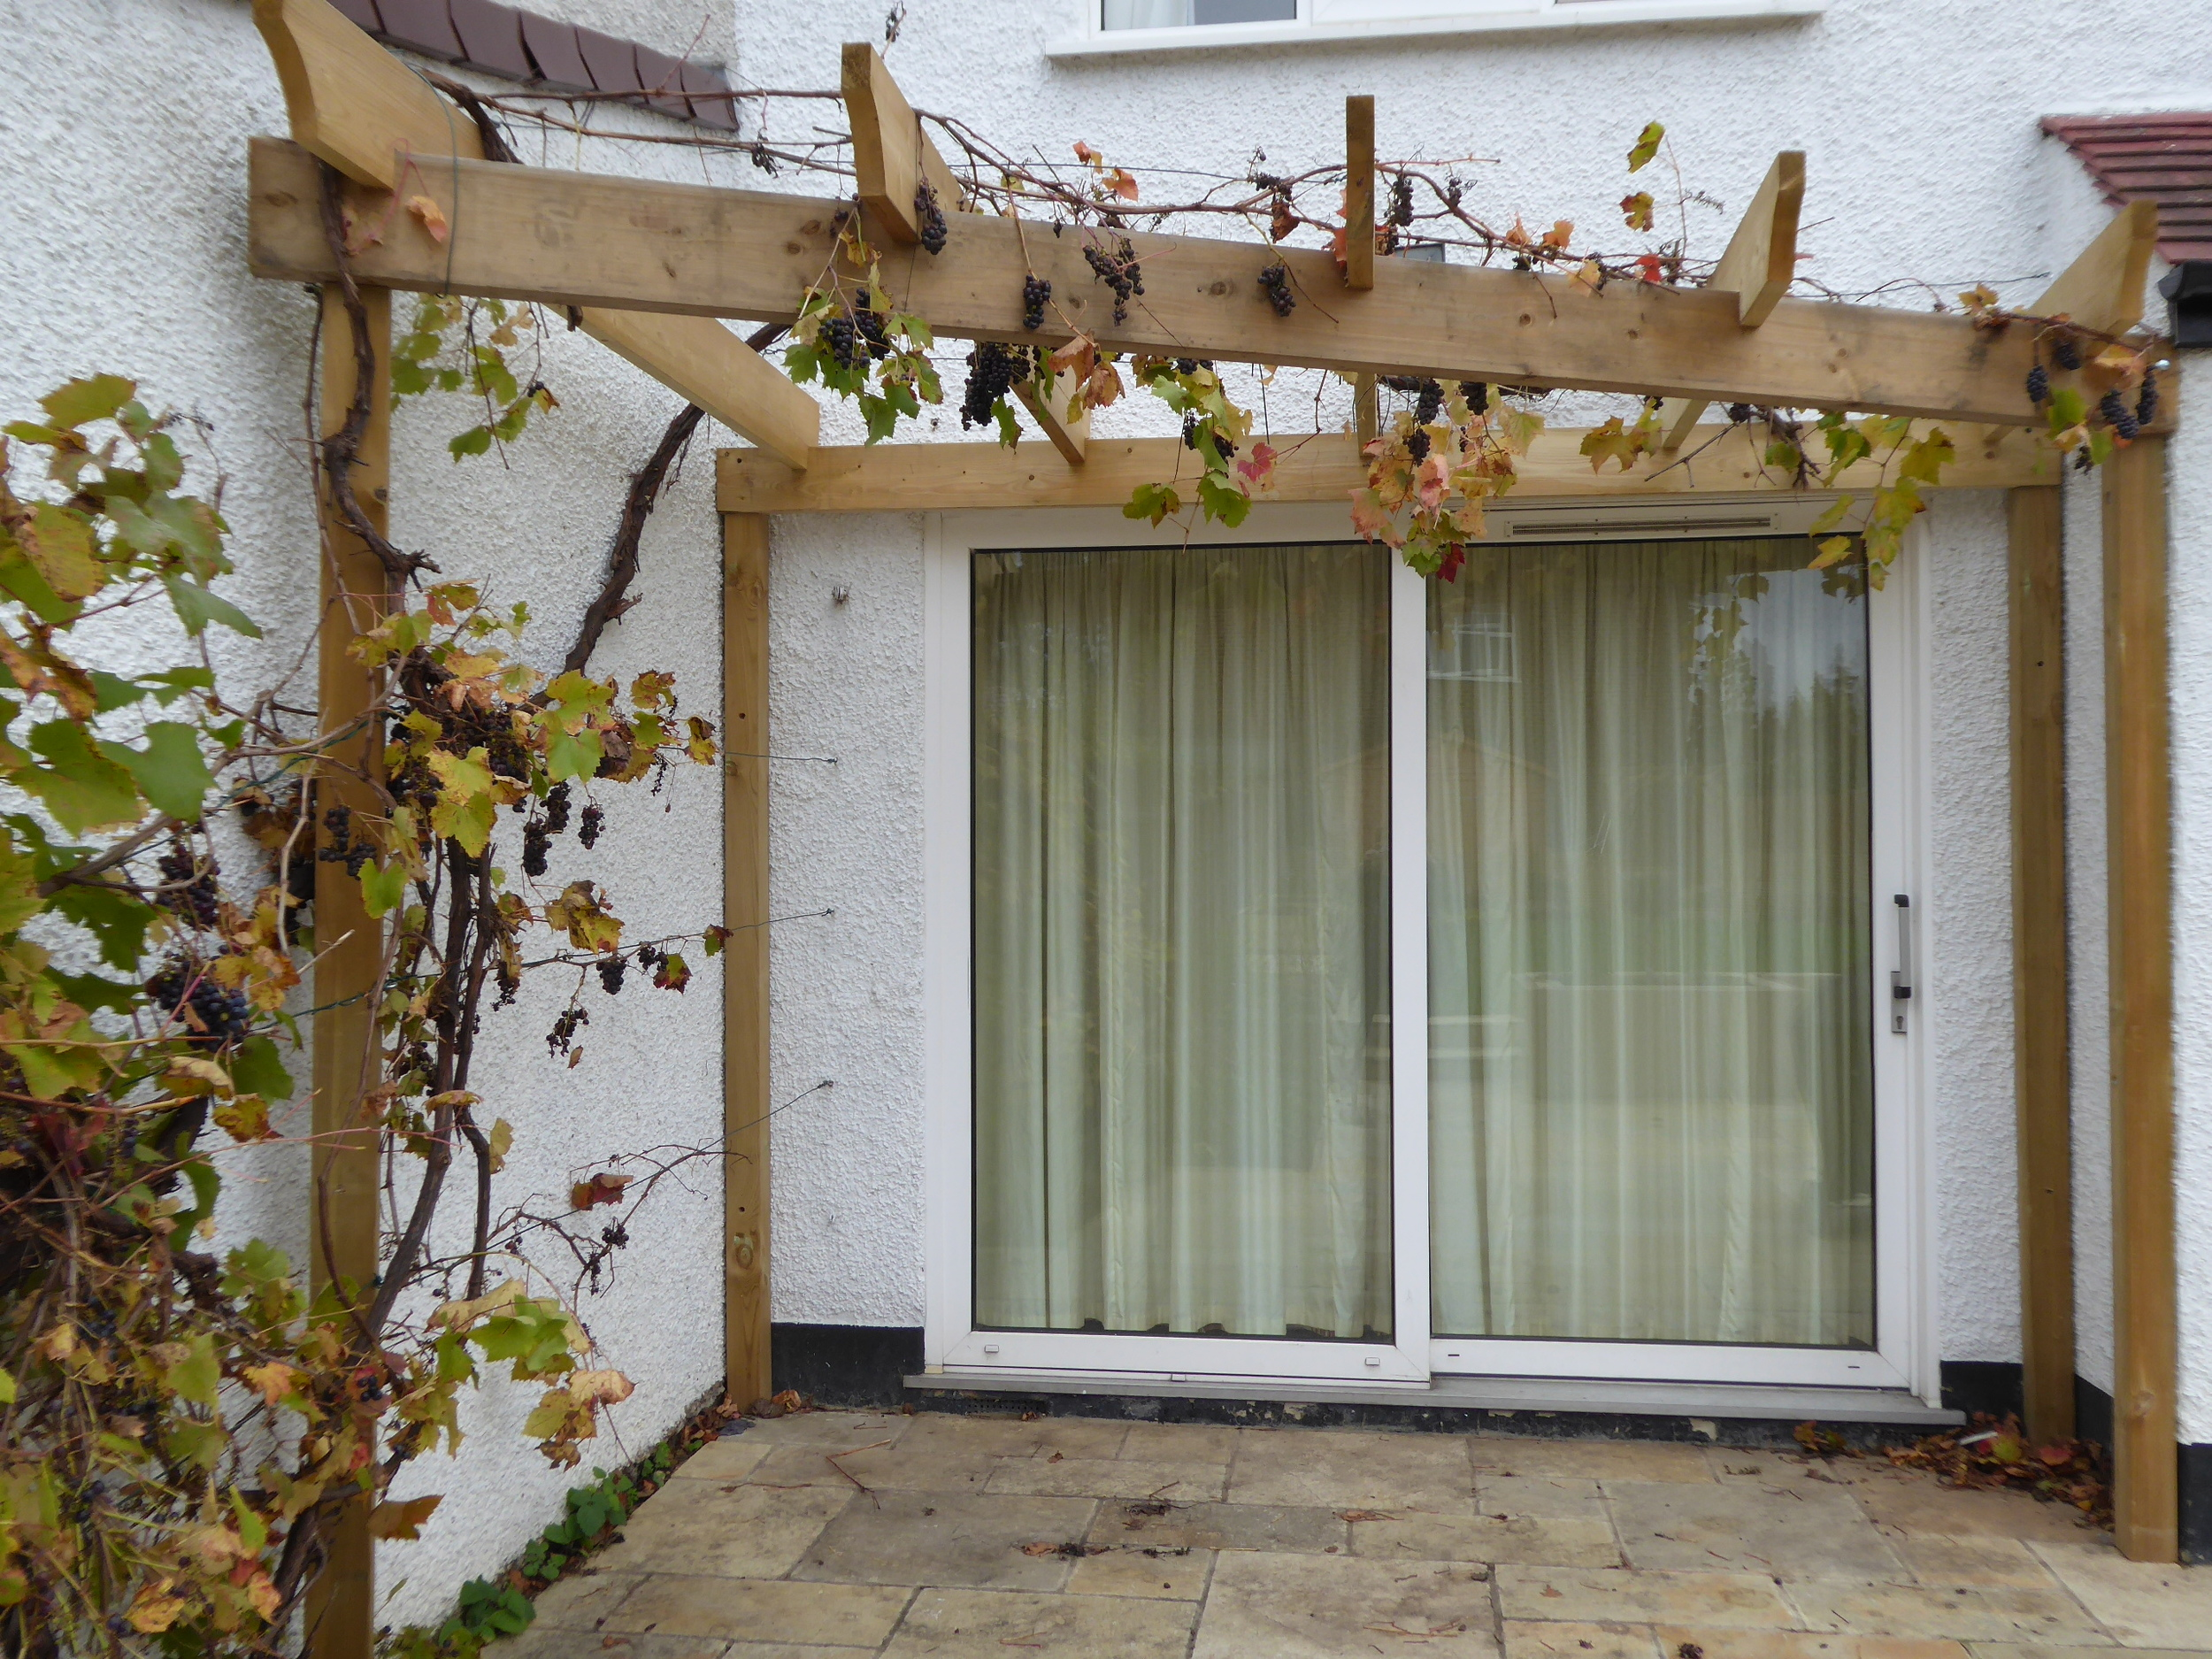 The only plant to be retained was the wonderful grapevine. We designed a pergola to support it, and it will now be trained over the living room doors.